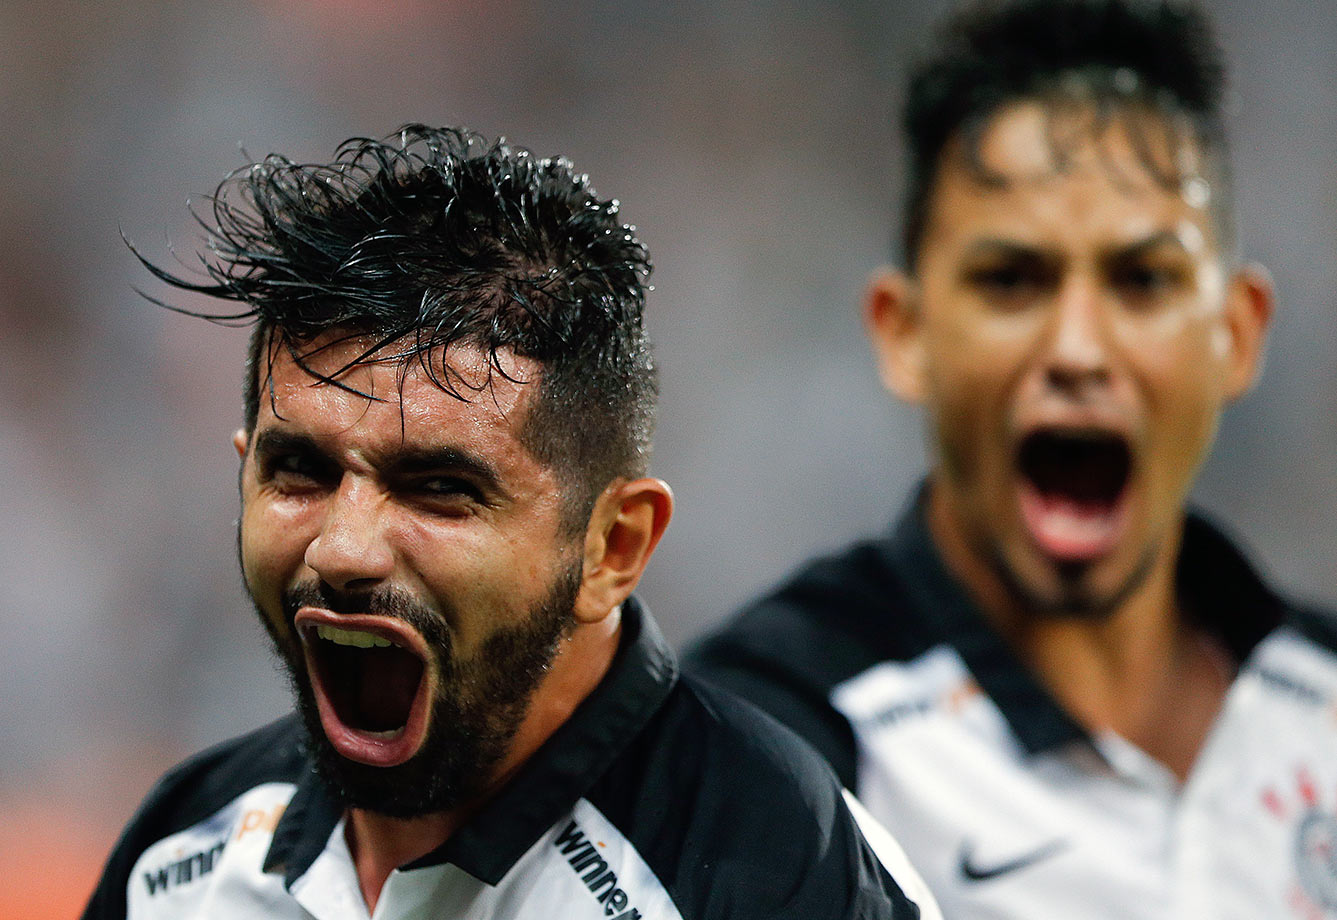 Guilherme of Brazil's Corinthians celebrates his goal against Colombia's Independiente Santa Fe during a Copa Libertadores match in Sao Paulo, Brazil.